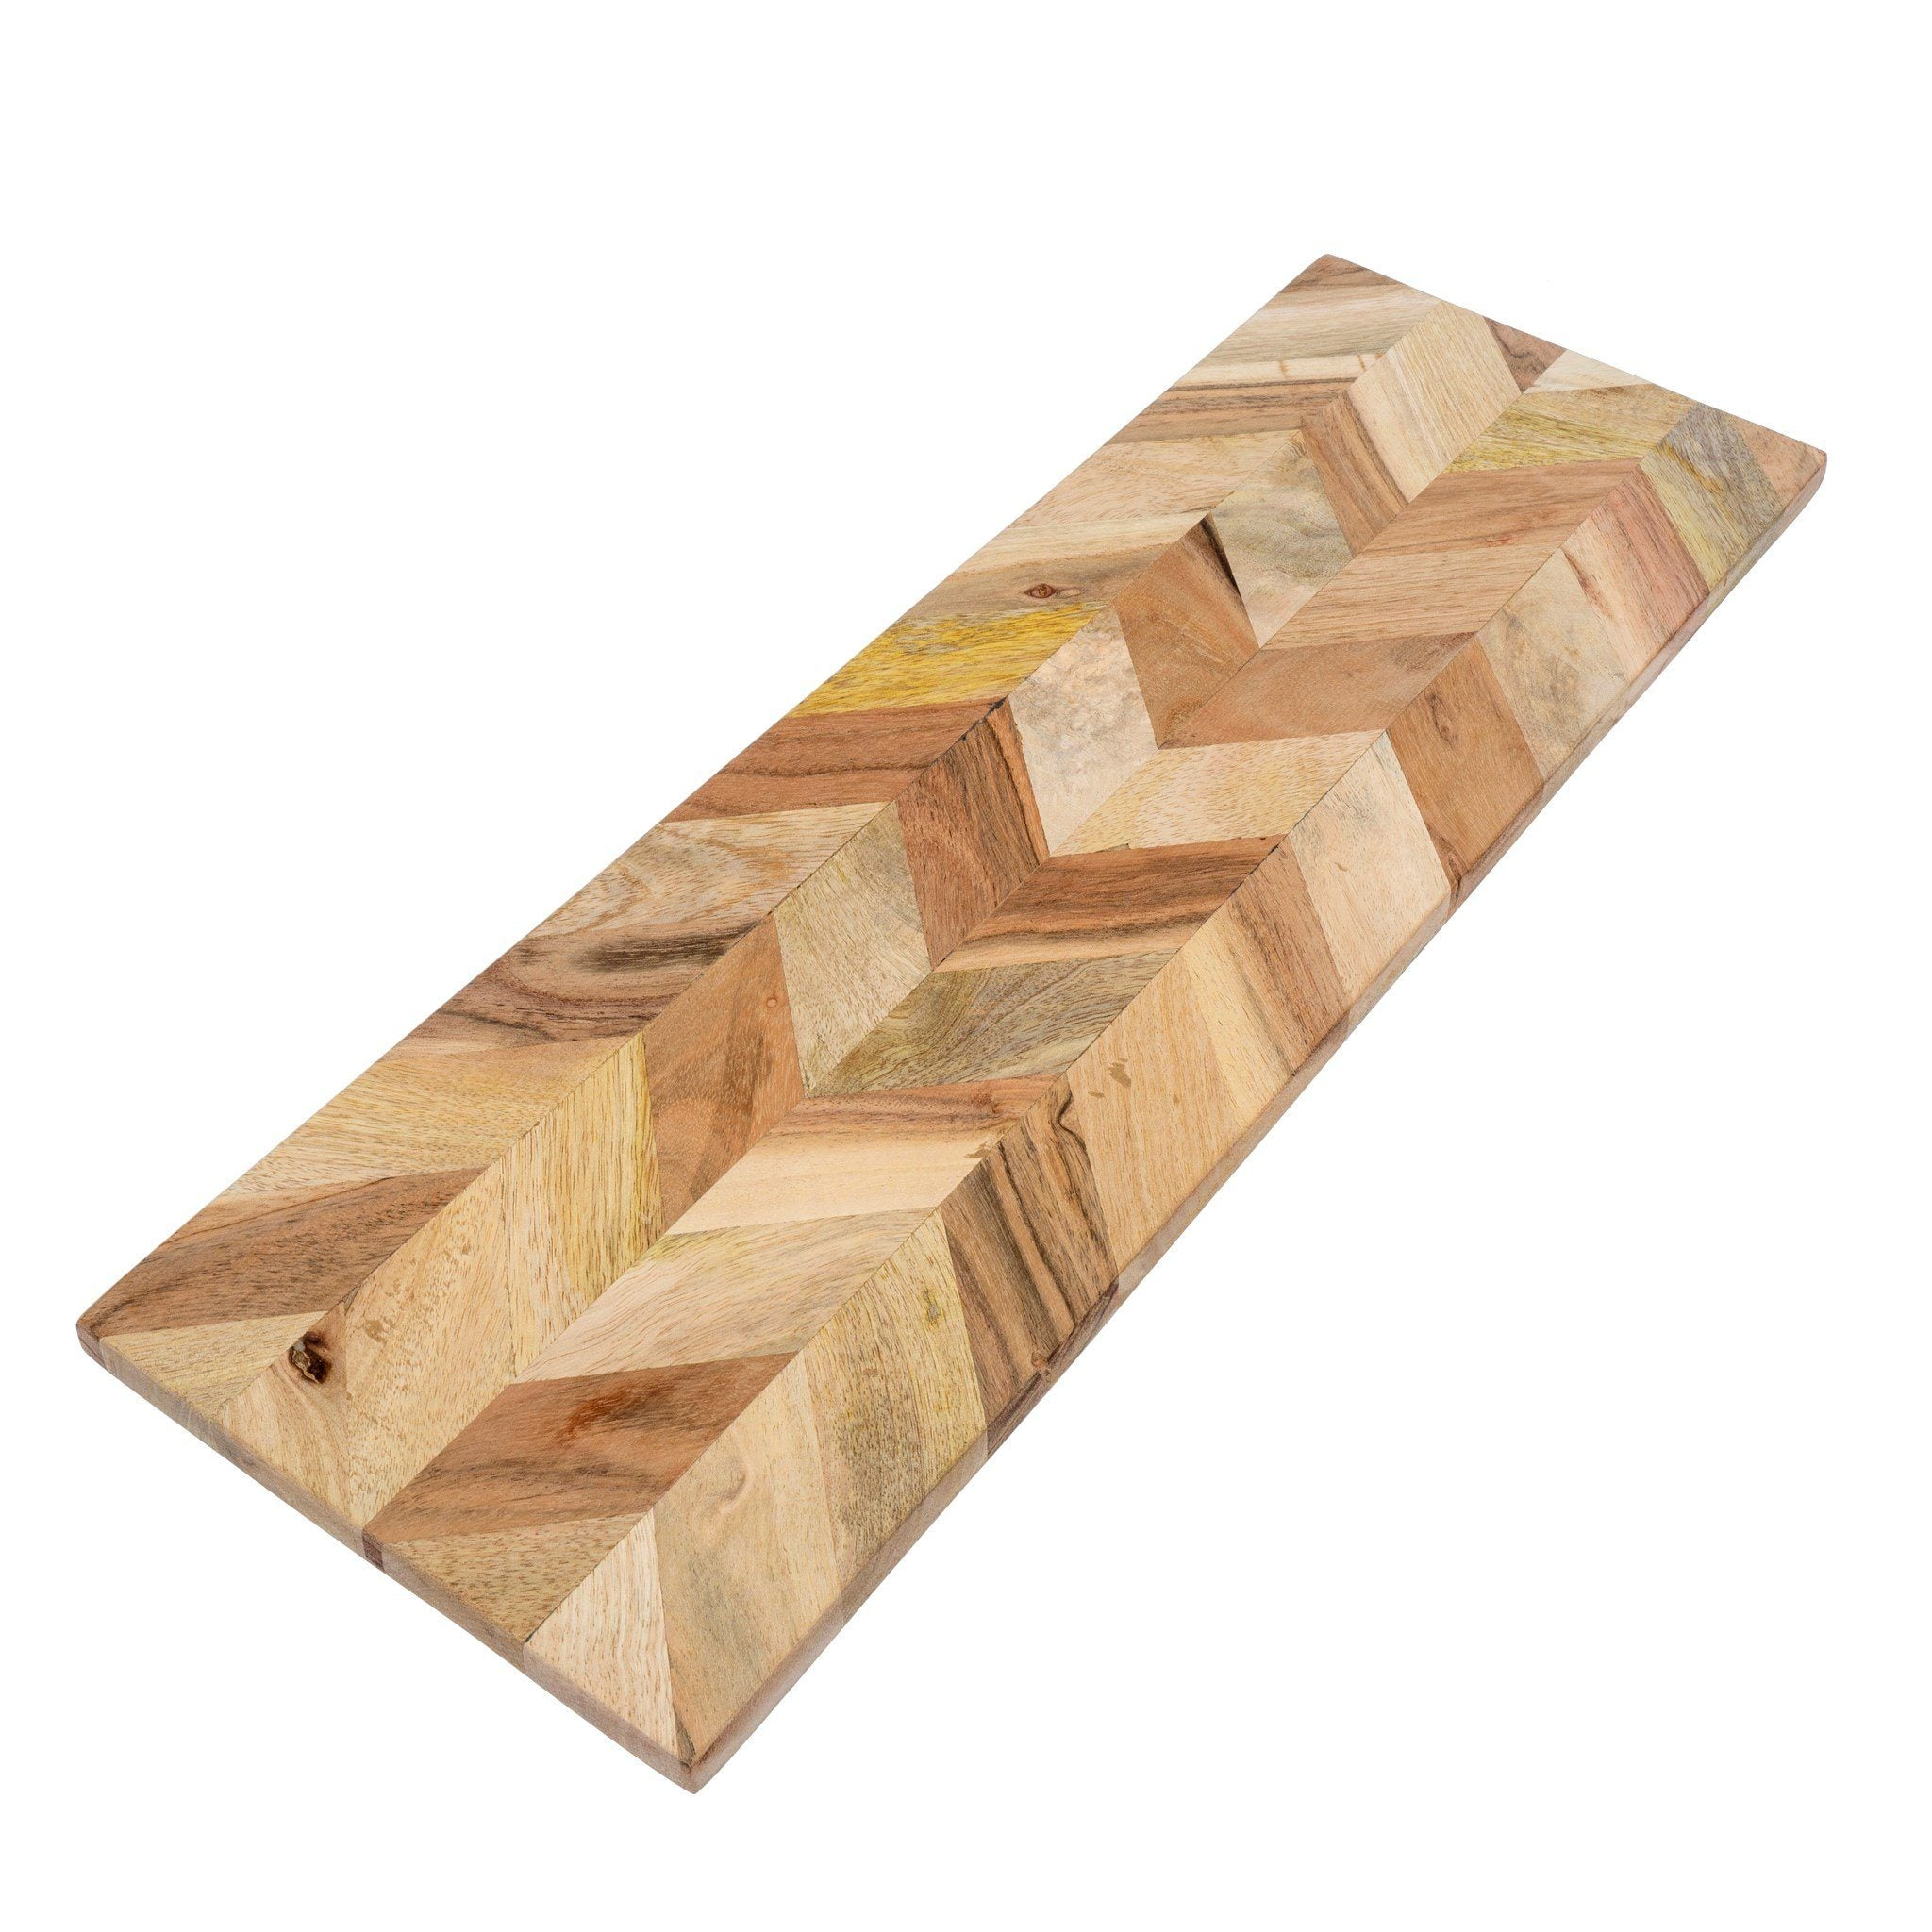 Herringbone Cheese Board Cutting Board Indaba Large